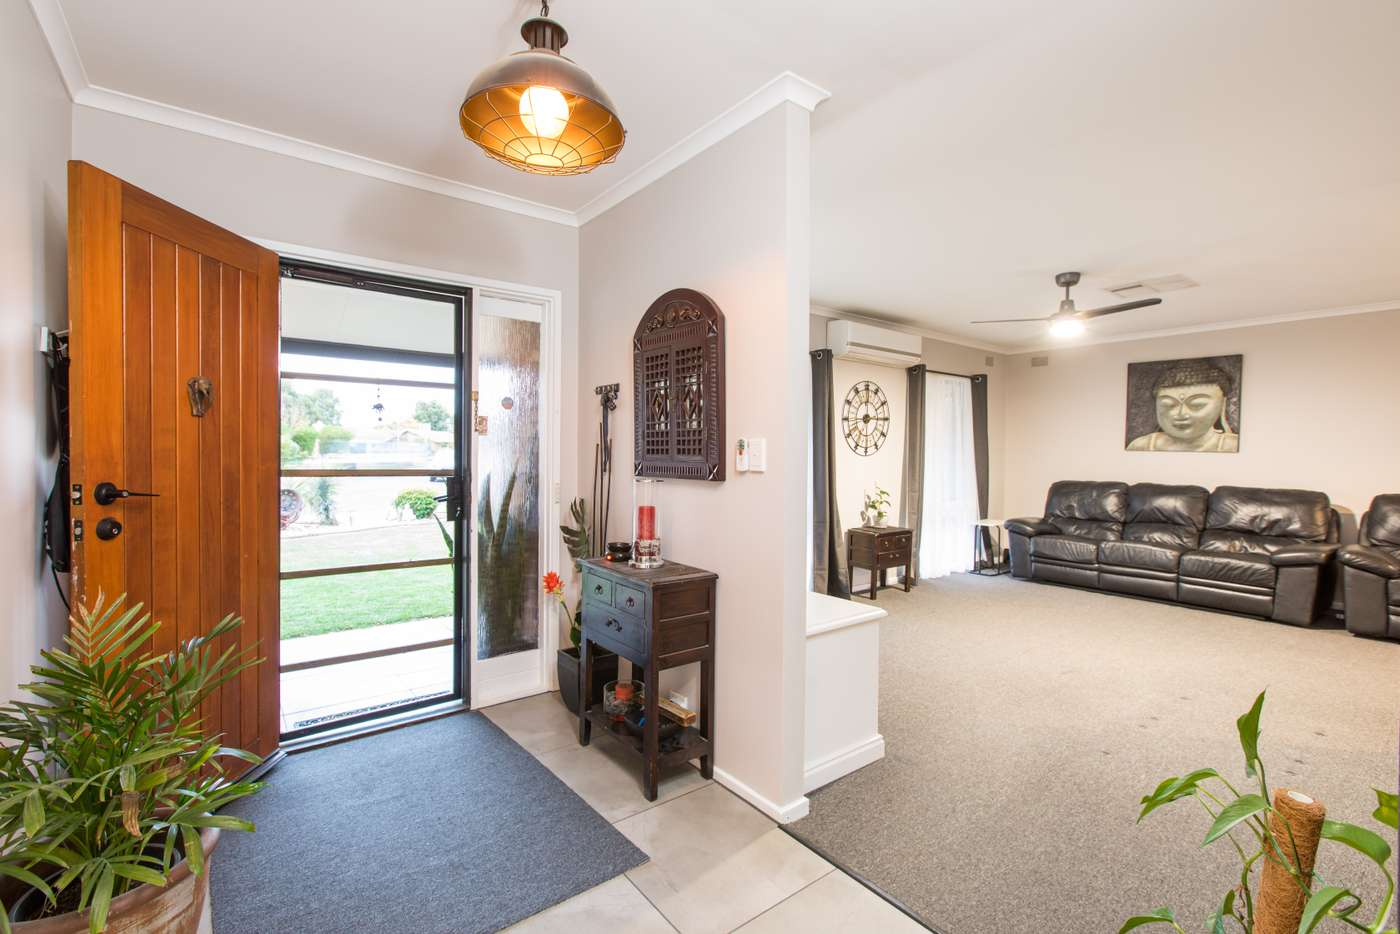 Sixth view of Homely house listing, 4 MERINDA COURT, Mildura VIC 3500